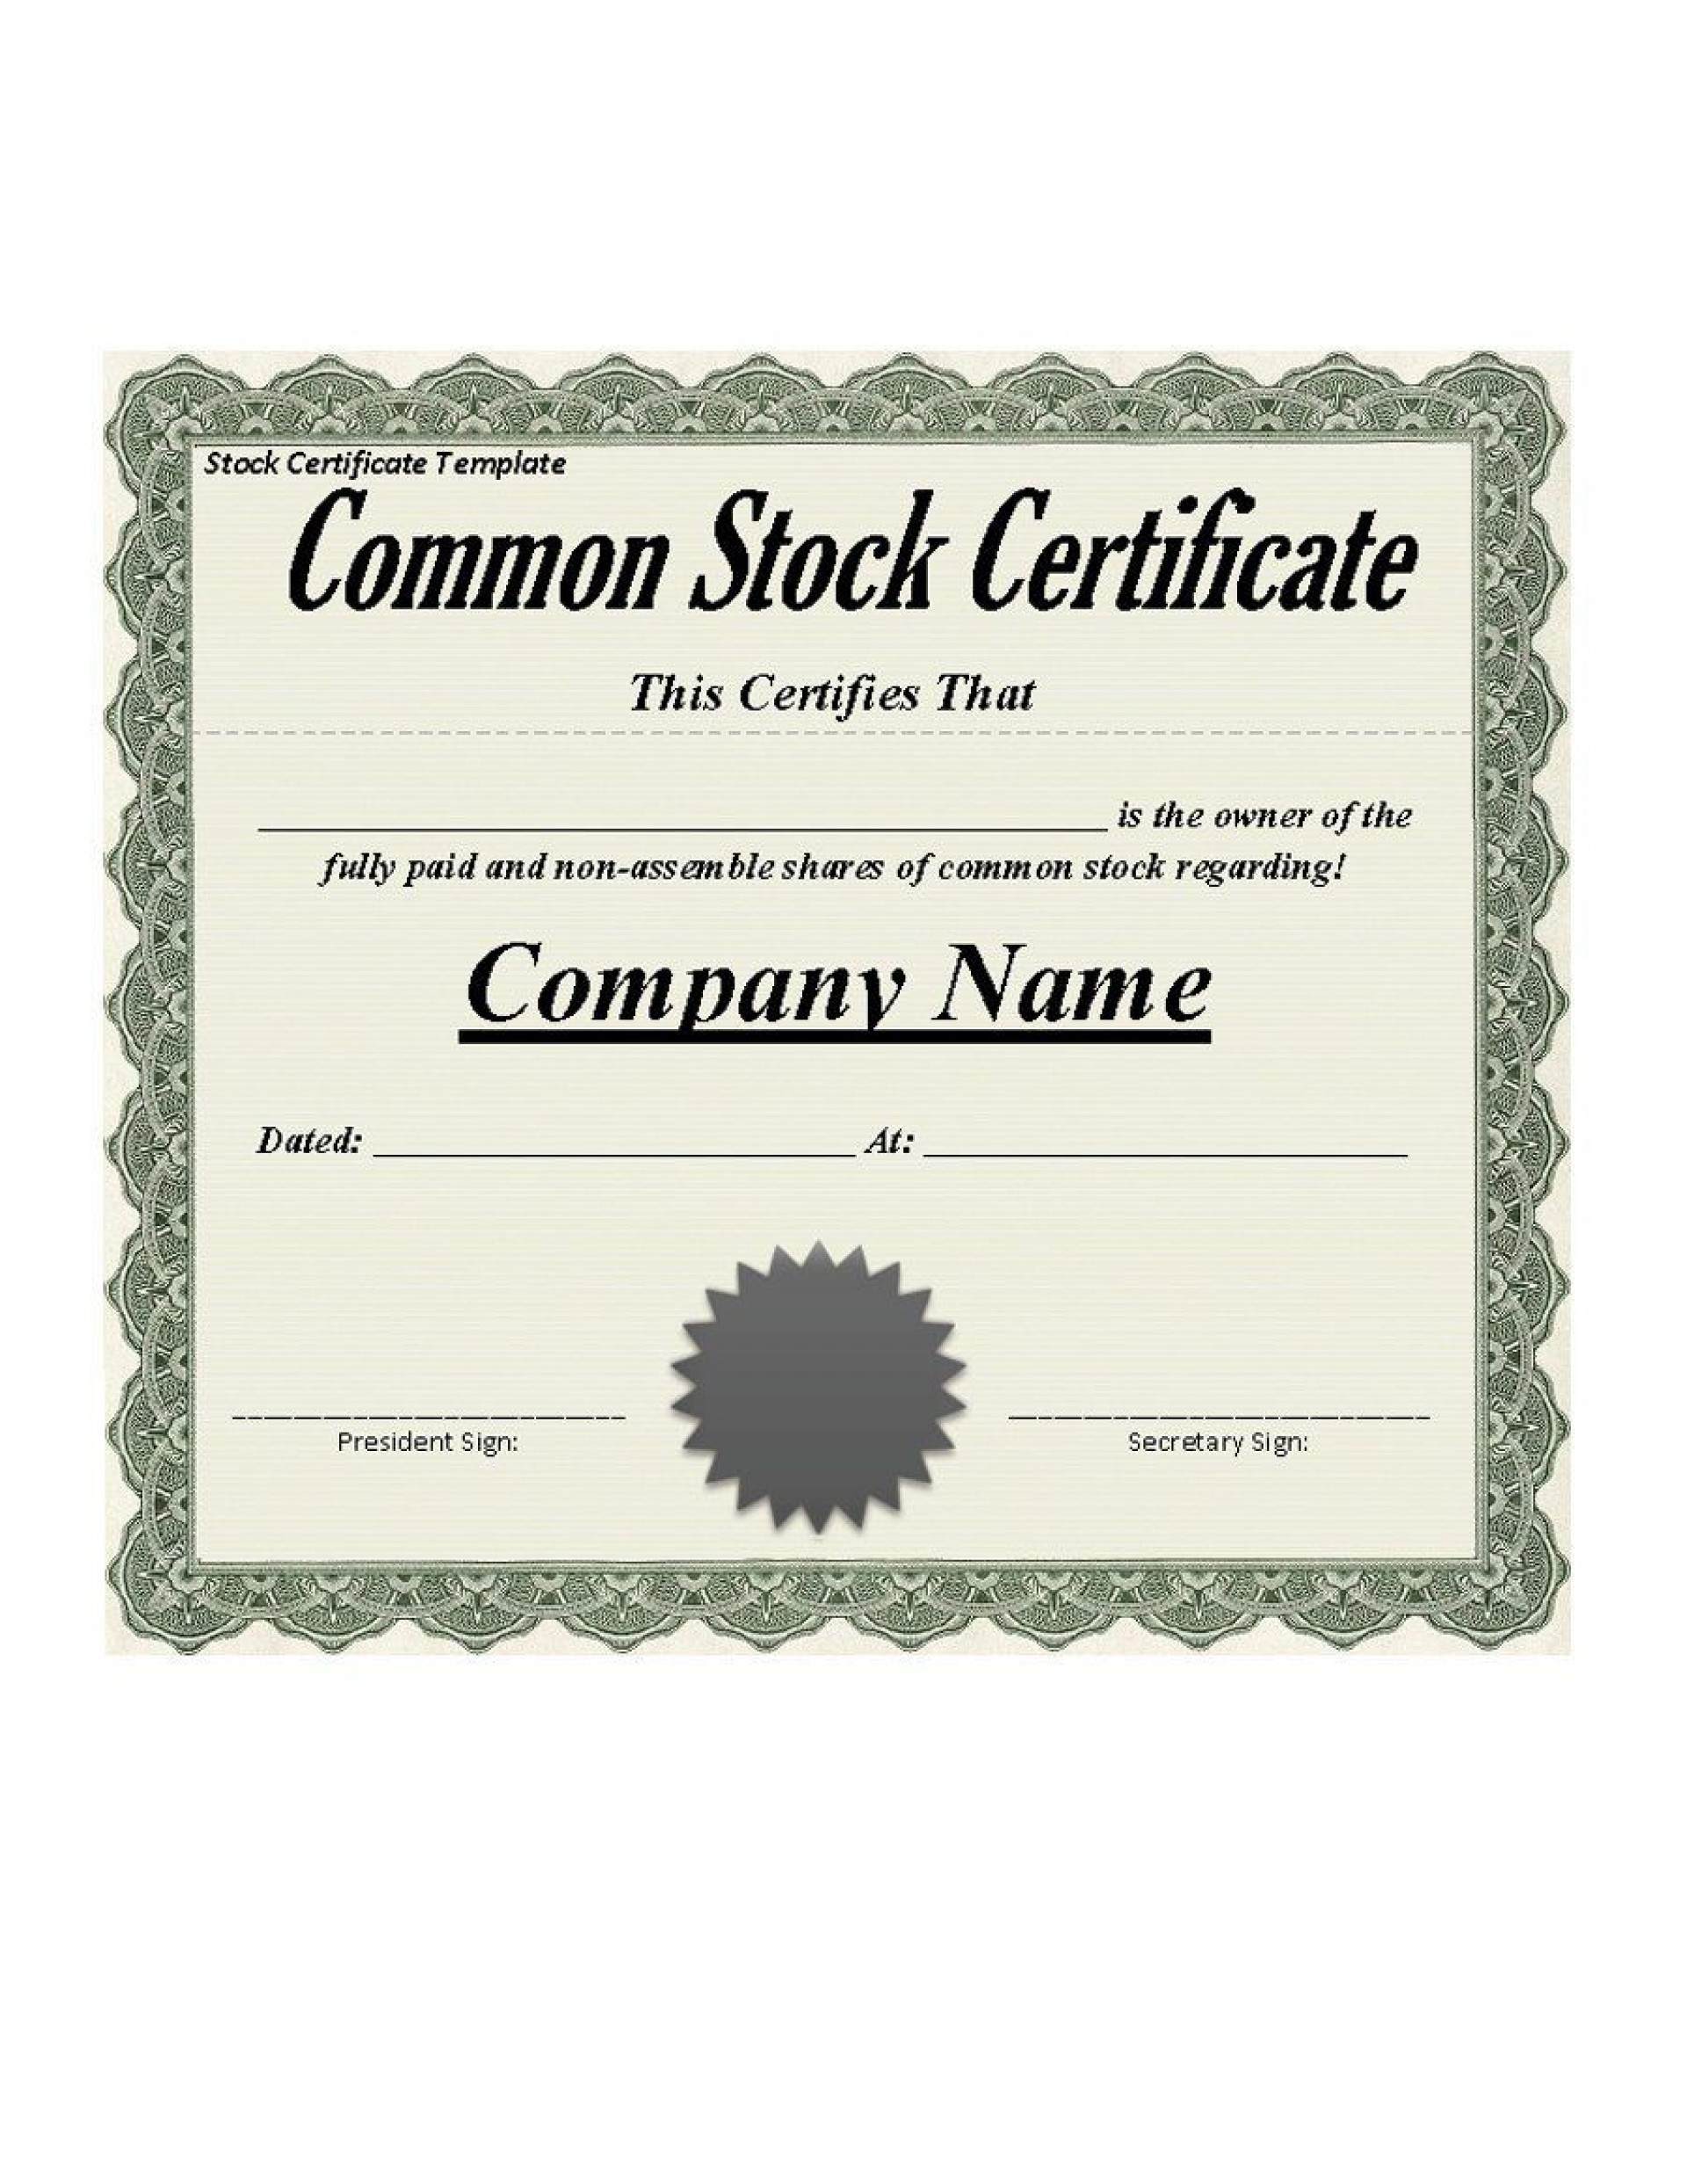 Stock Certificate Template Word  Addictionary for Amazing Stock Certificate Template Word